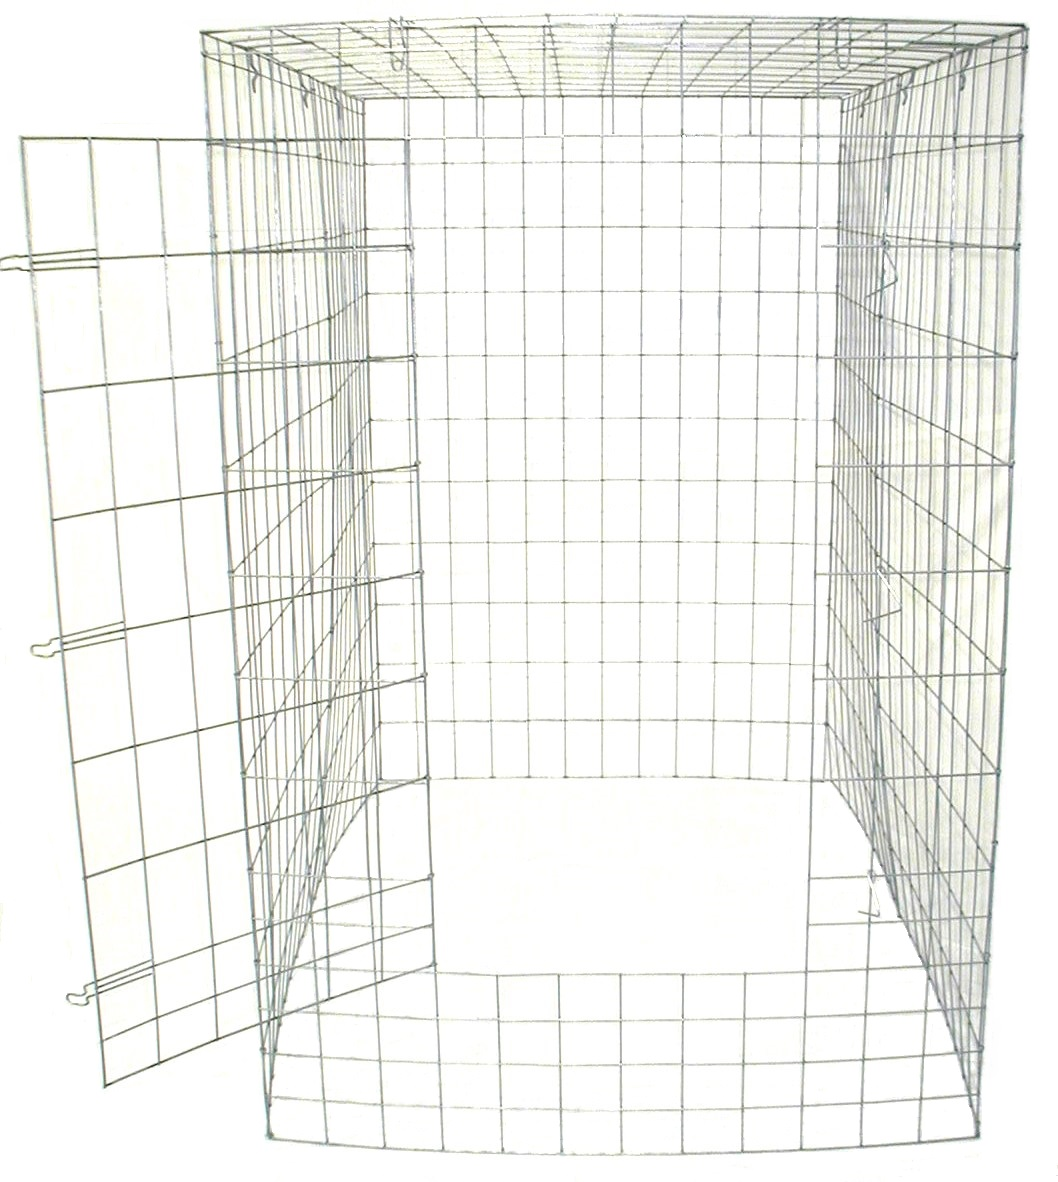 Large Fly Pen 10 12 Gauge Wire Galvanized Extra Wire At Bottom Front Only Freight